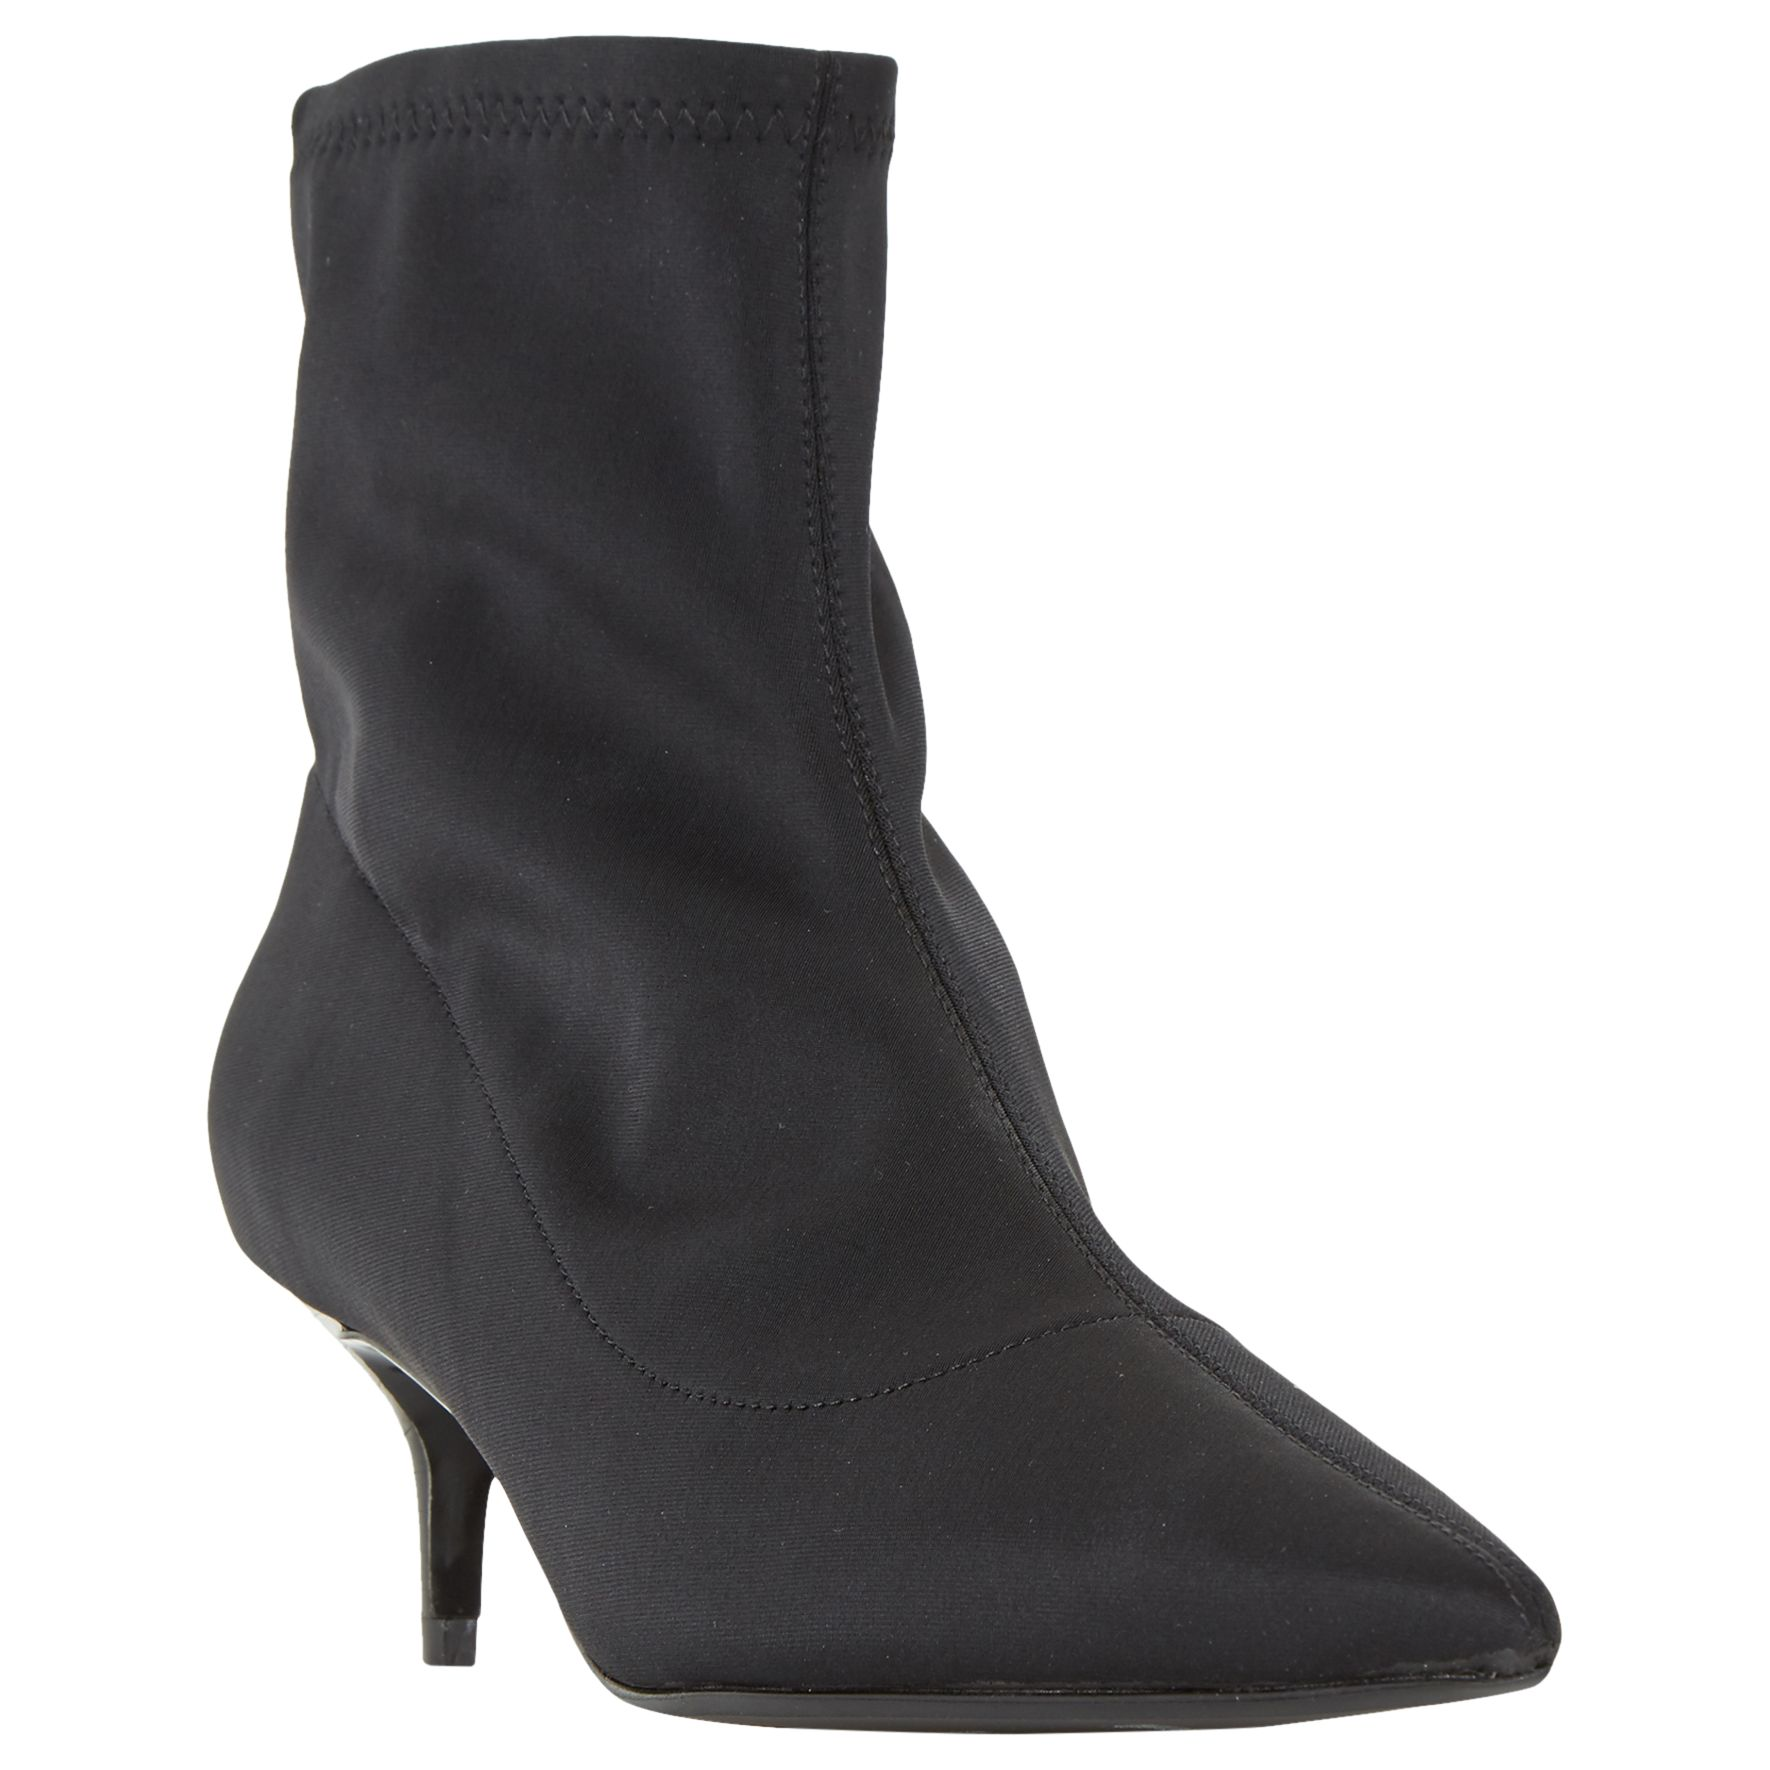 cef66ae478ad6 Dune Opelli Kitten Heel Stretch Sock Ankle Boots, Black at John Lewis &  Partners